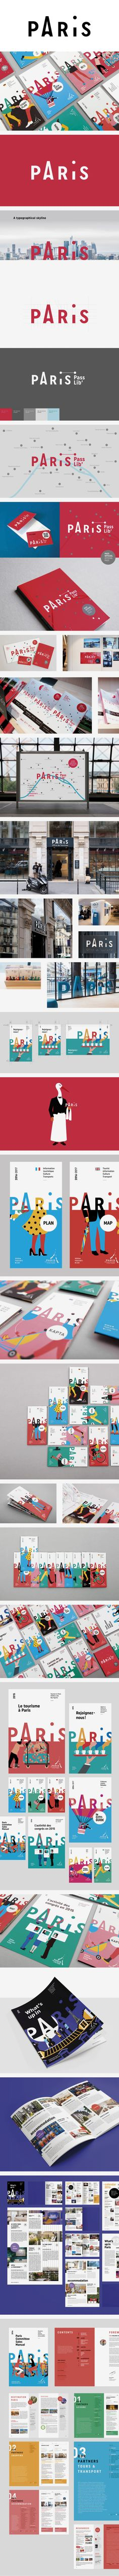 More corporate-designs are collected on: https://pinterest.com/rothenhaeusler/best-of-corporate-design/ · Agency: Grapheine (Paris) · Client: L'Office du Tourisme et des Congrès de Paris · Source: htt